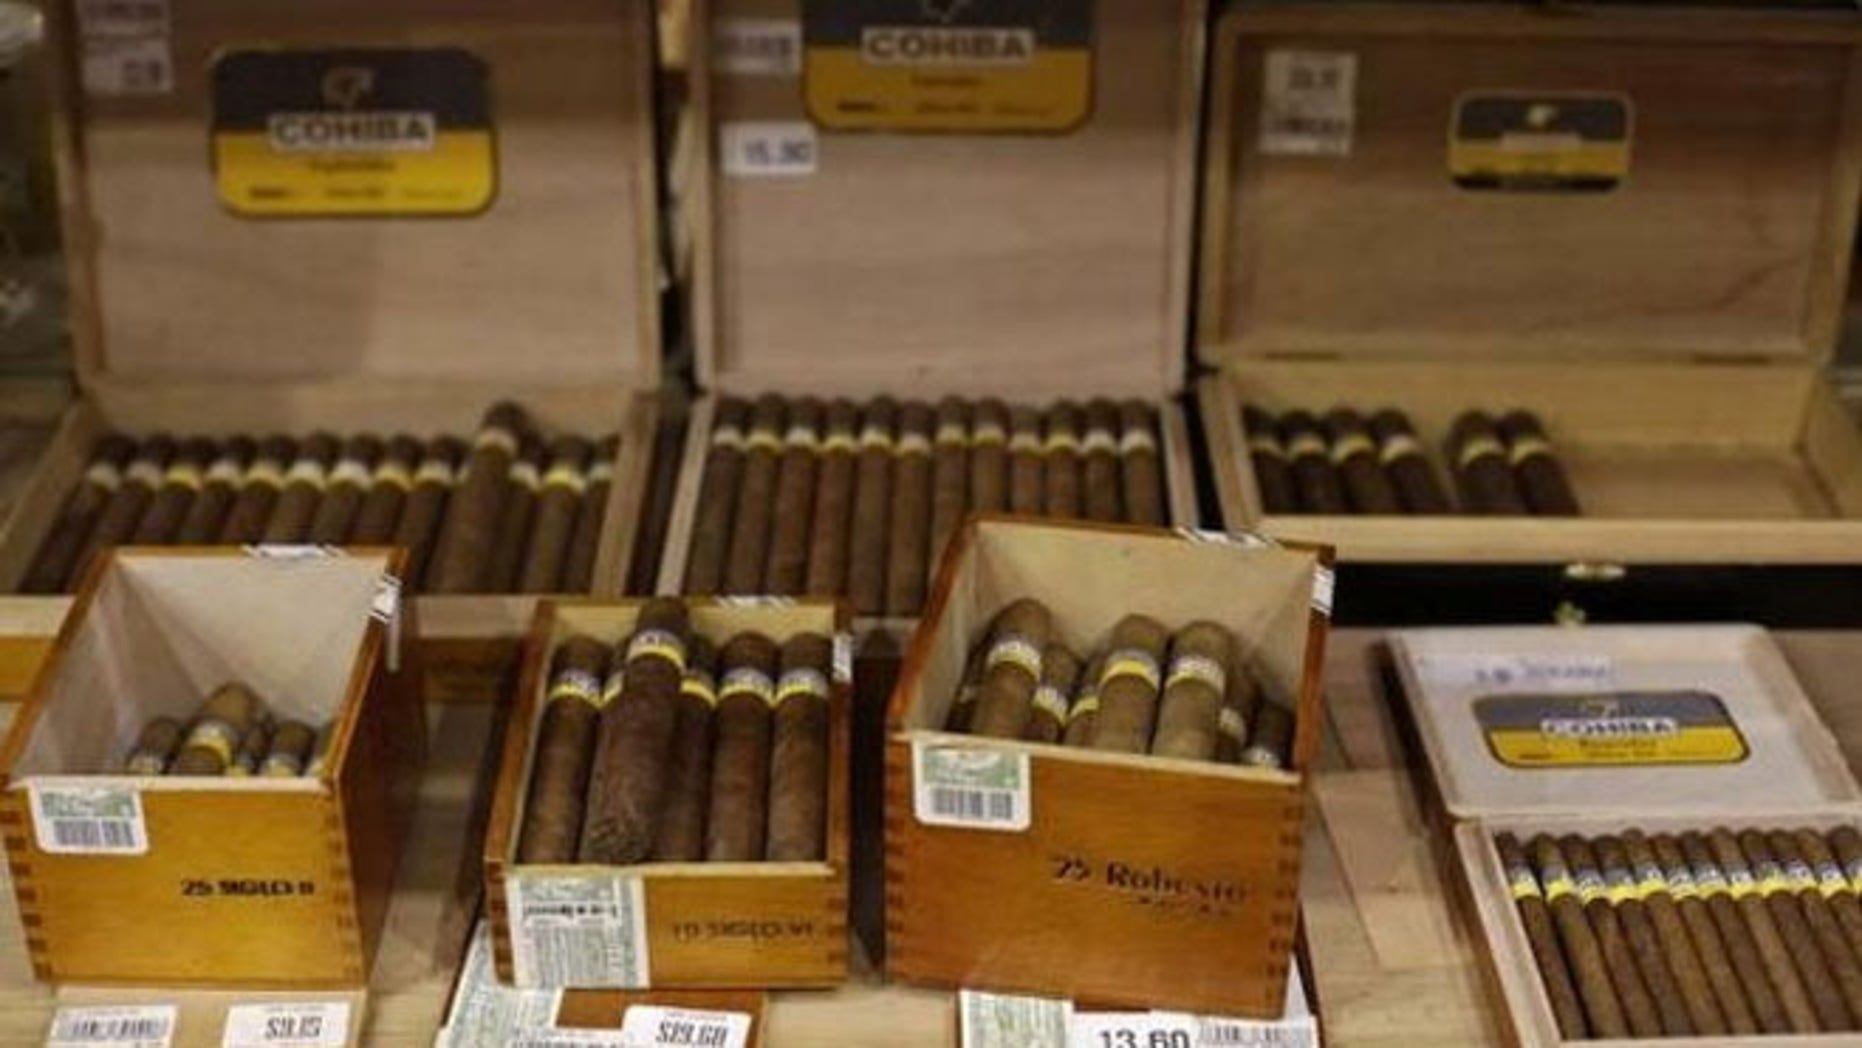 Americans are now able to bring back $100 worth of Cuban cigars.